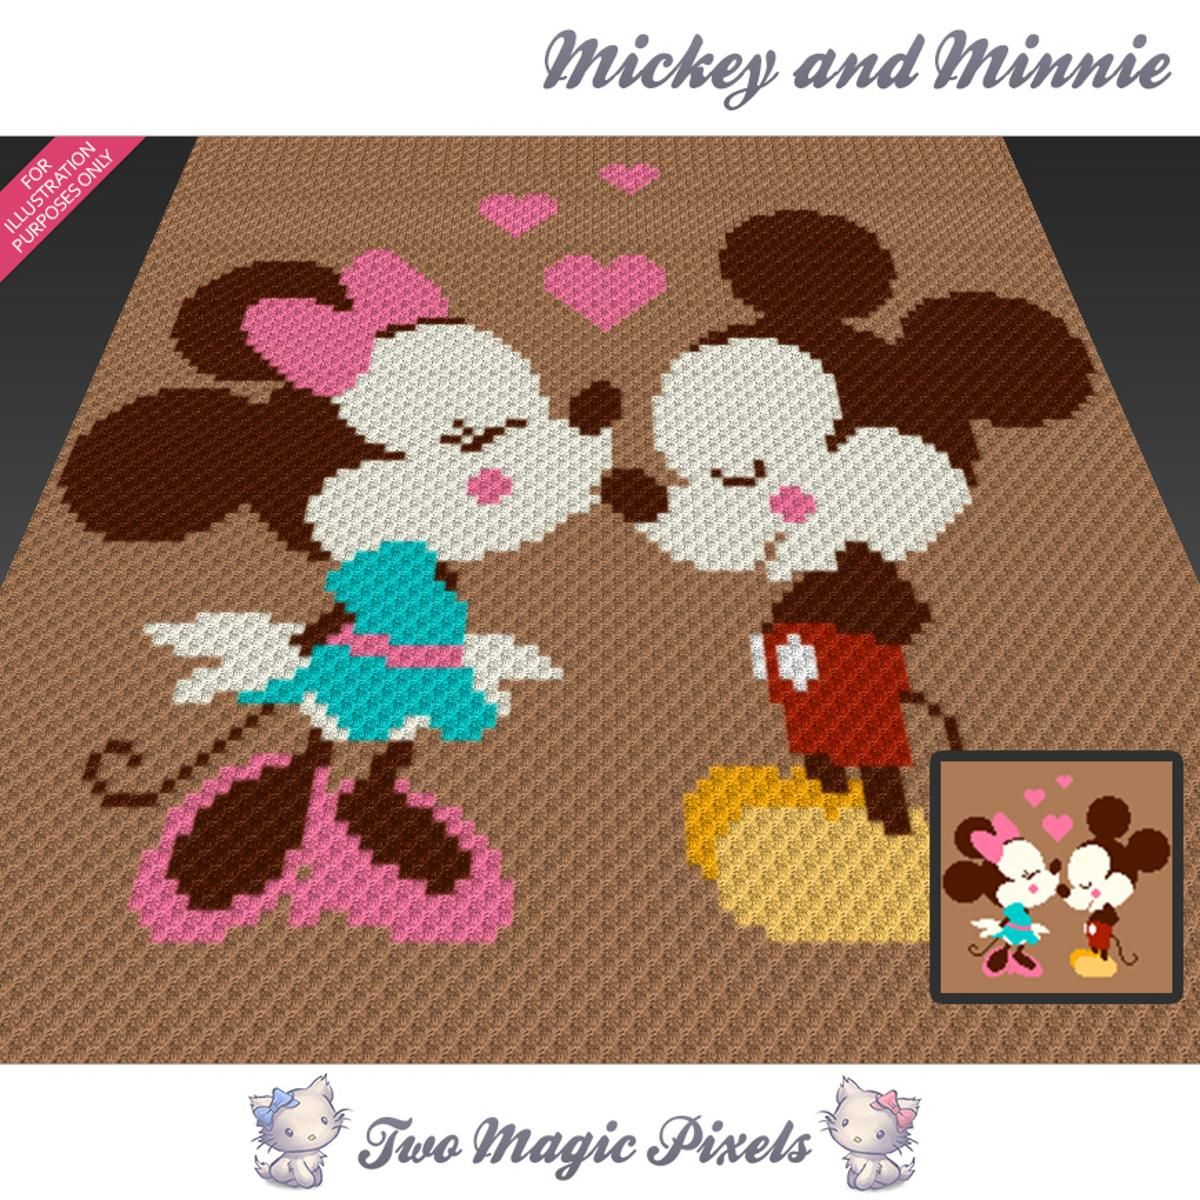 Mickey and Minnie C2C Crochet Graph | Pinterest | Decken, Häkeln und ...